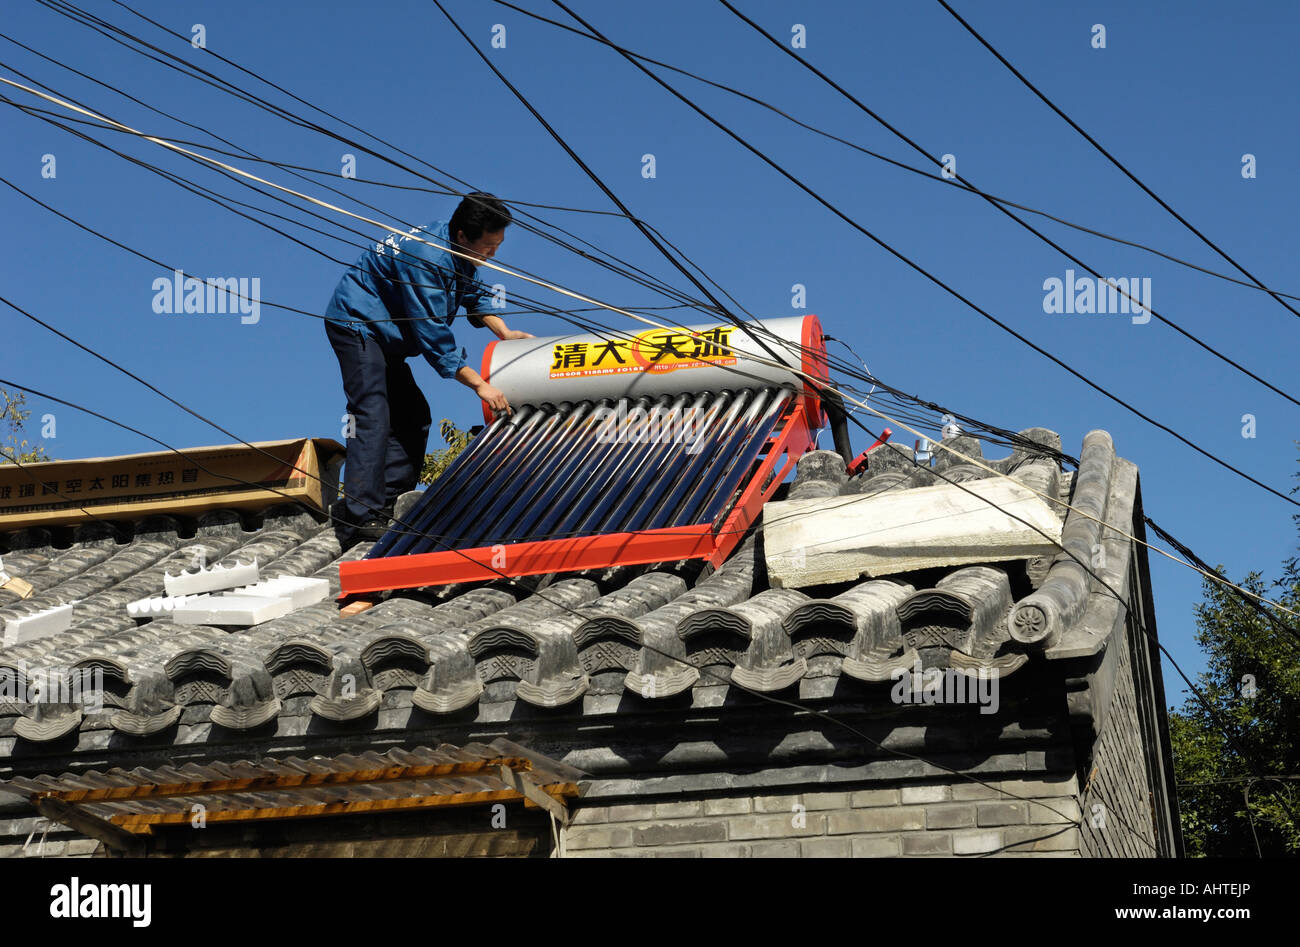 Hot Water Heater Stock Photos & Hot Water Heater Stock Images - Alamy